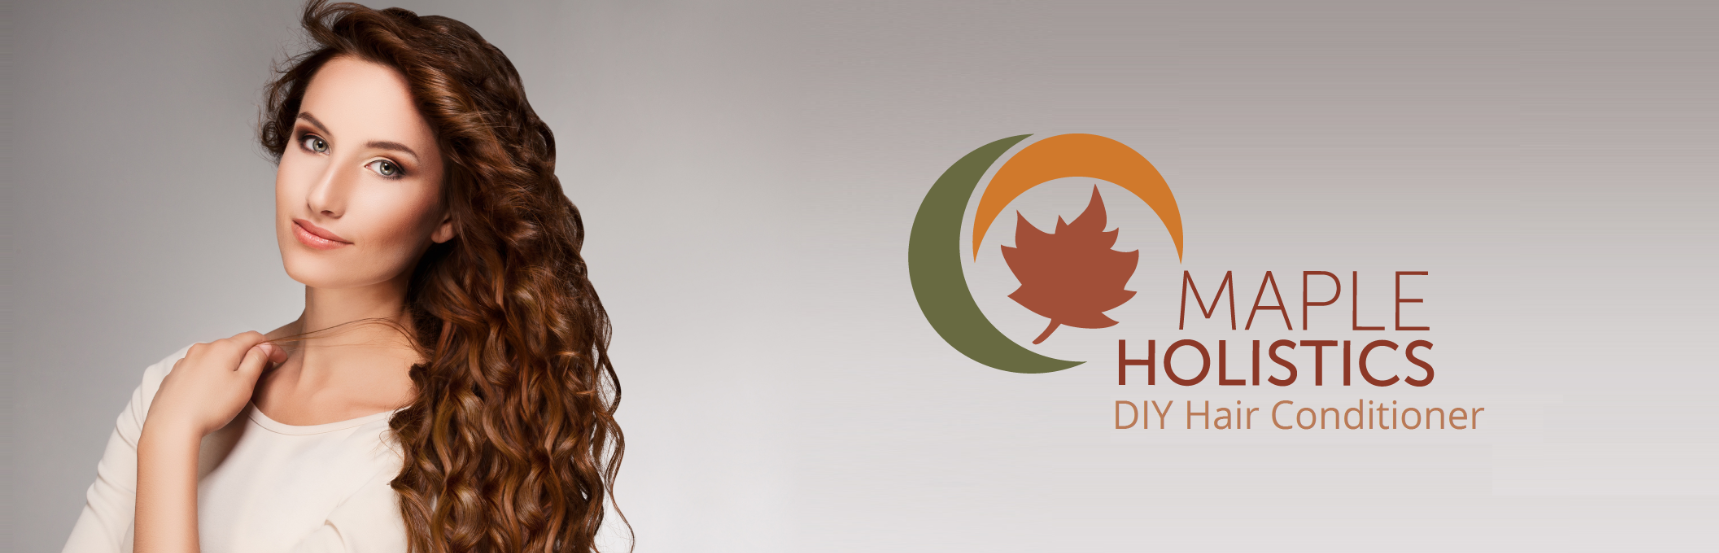 Maple Holistics conditioner promotional banner.